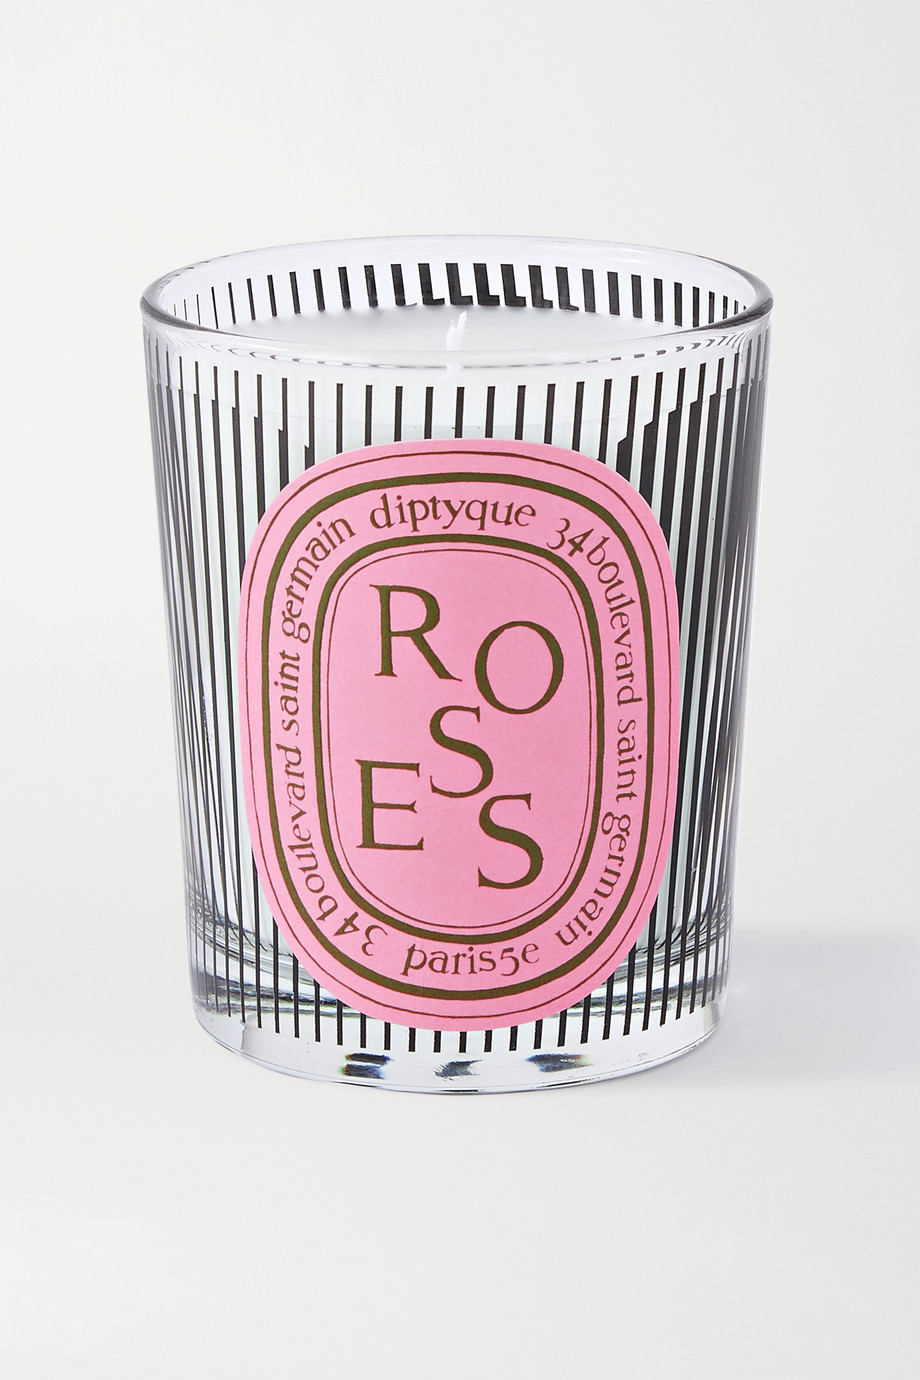 DIPTYQUE Graphic Collection scented candle - Roses, 190g